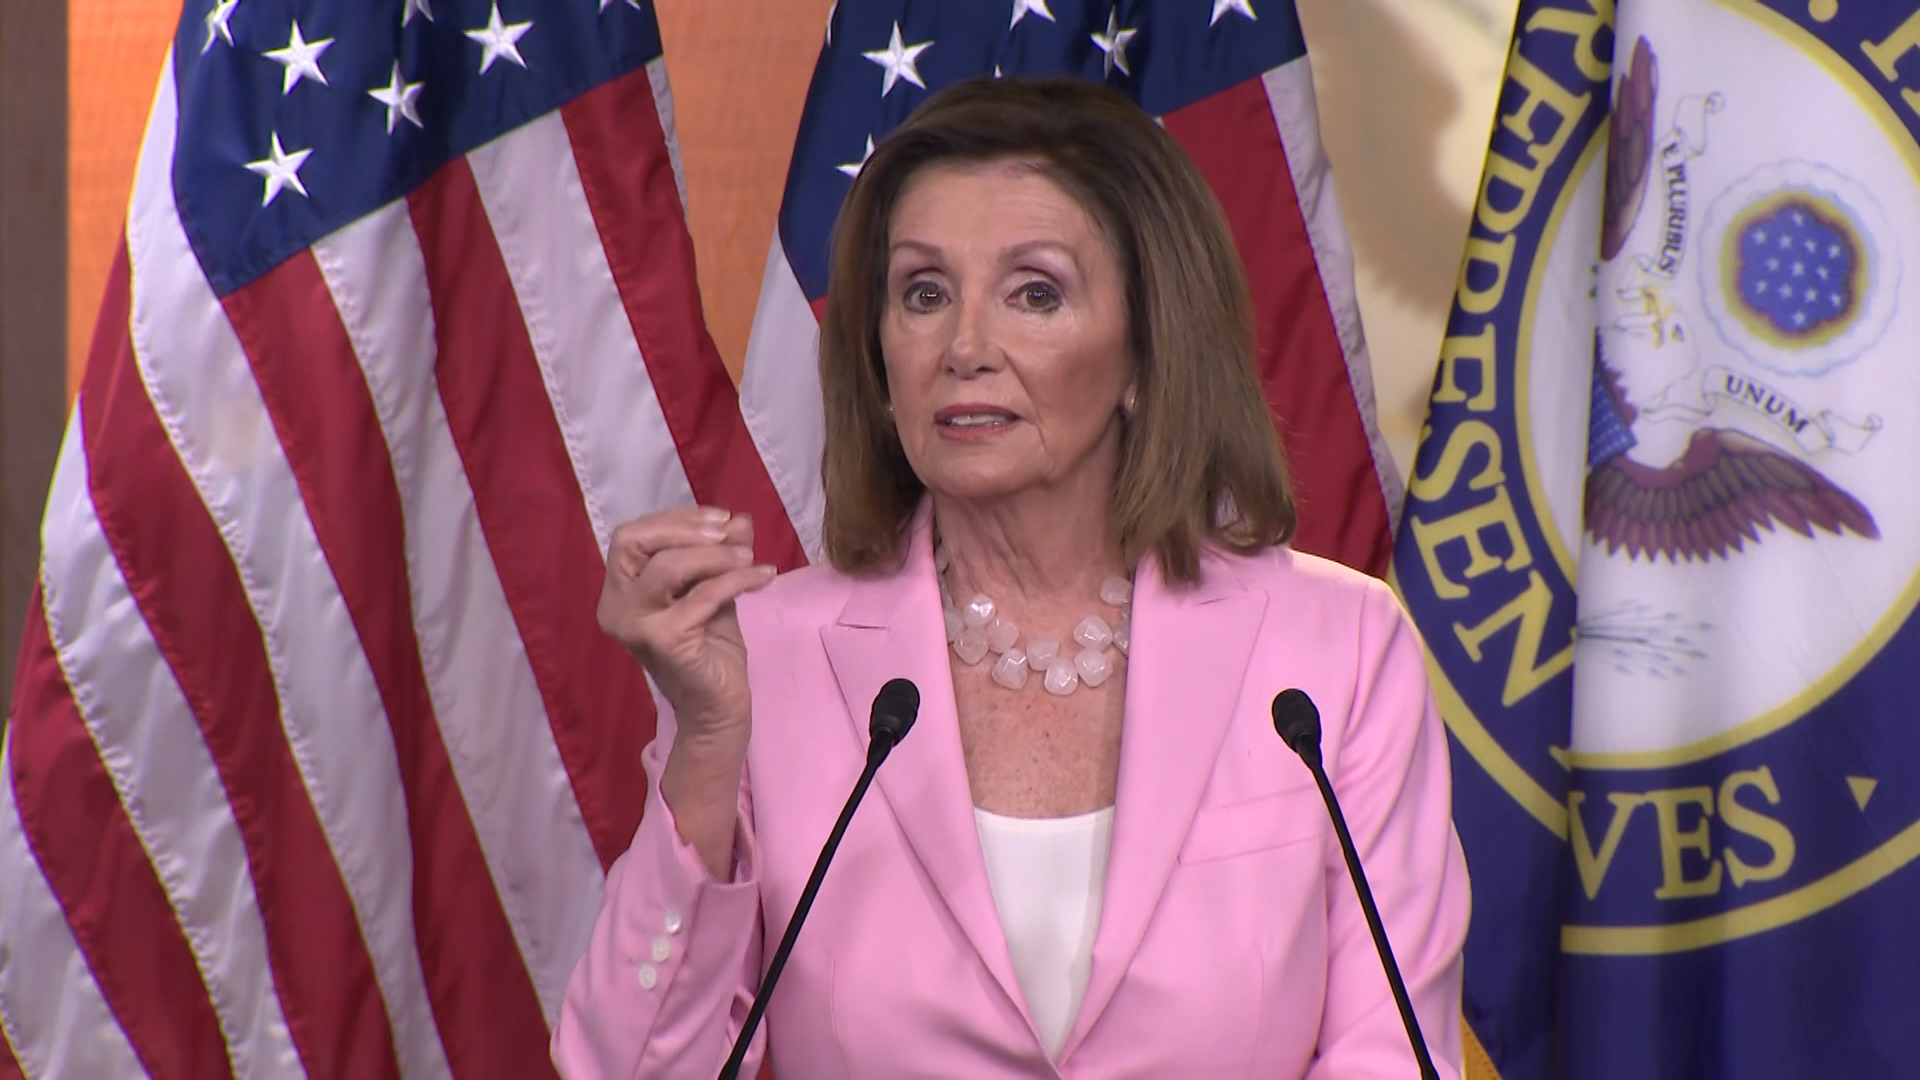 Why Nancy Pelosi says it doesn't matter whether Trump can be trusted